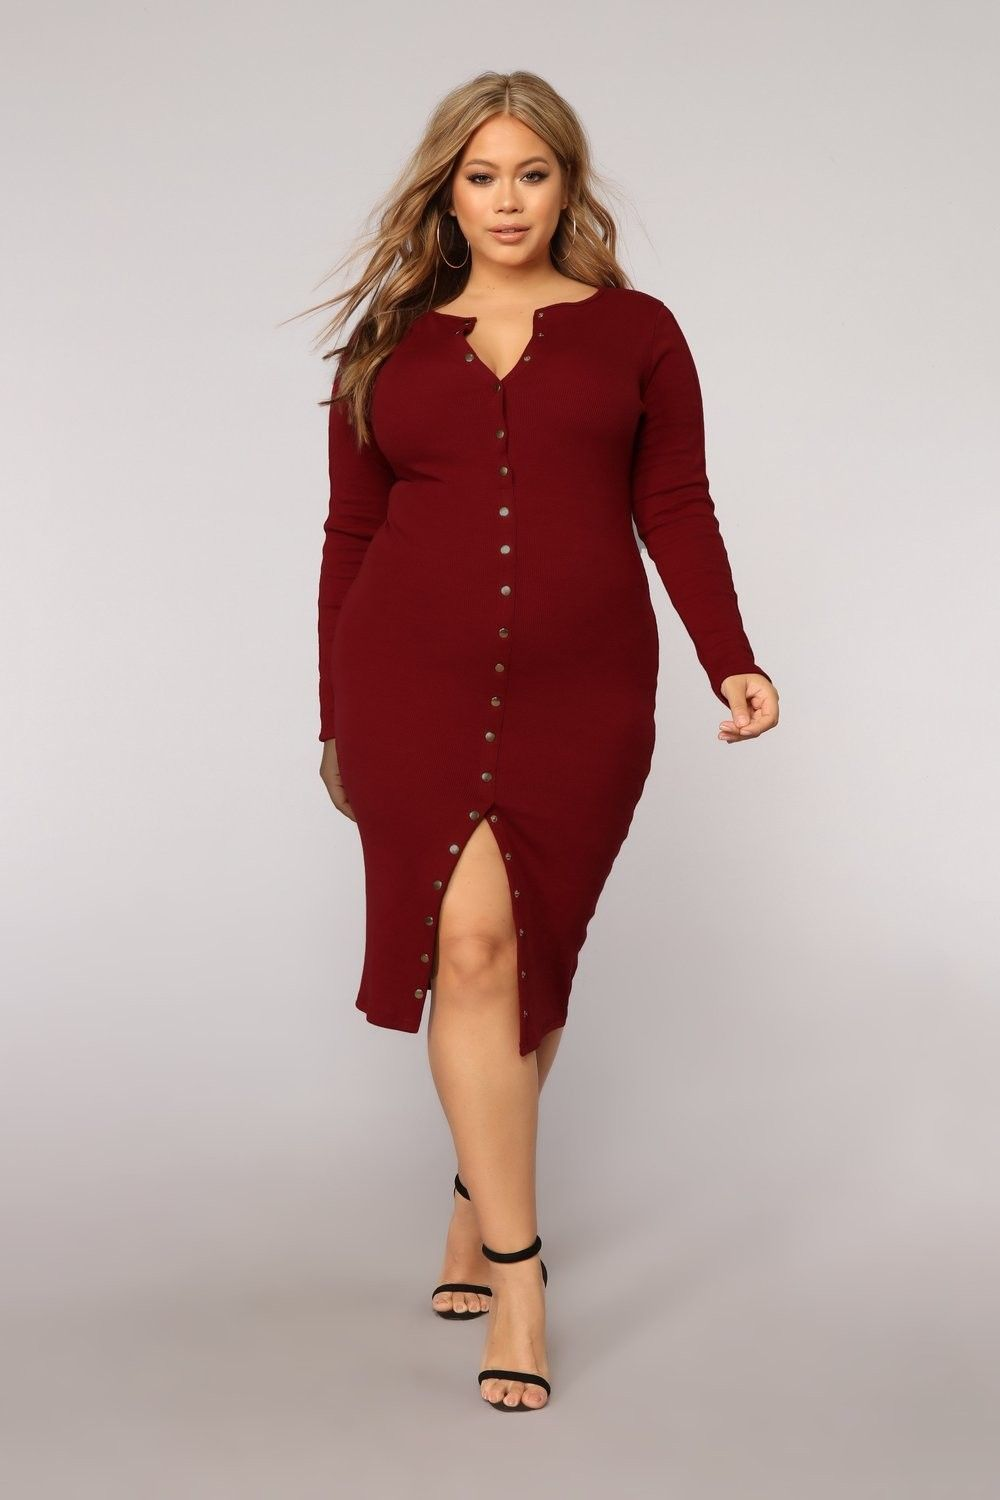 Plus Size Vintage Jams Dress - Wine $34.99 #fashion #ootd #outfit ...